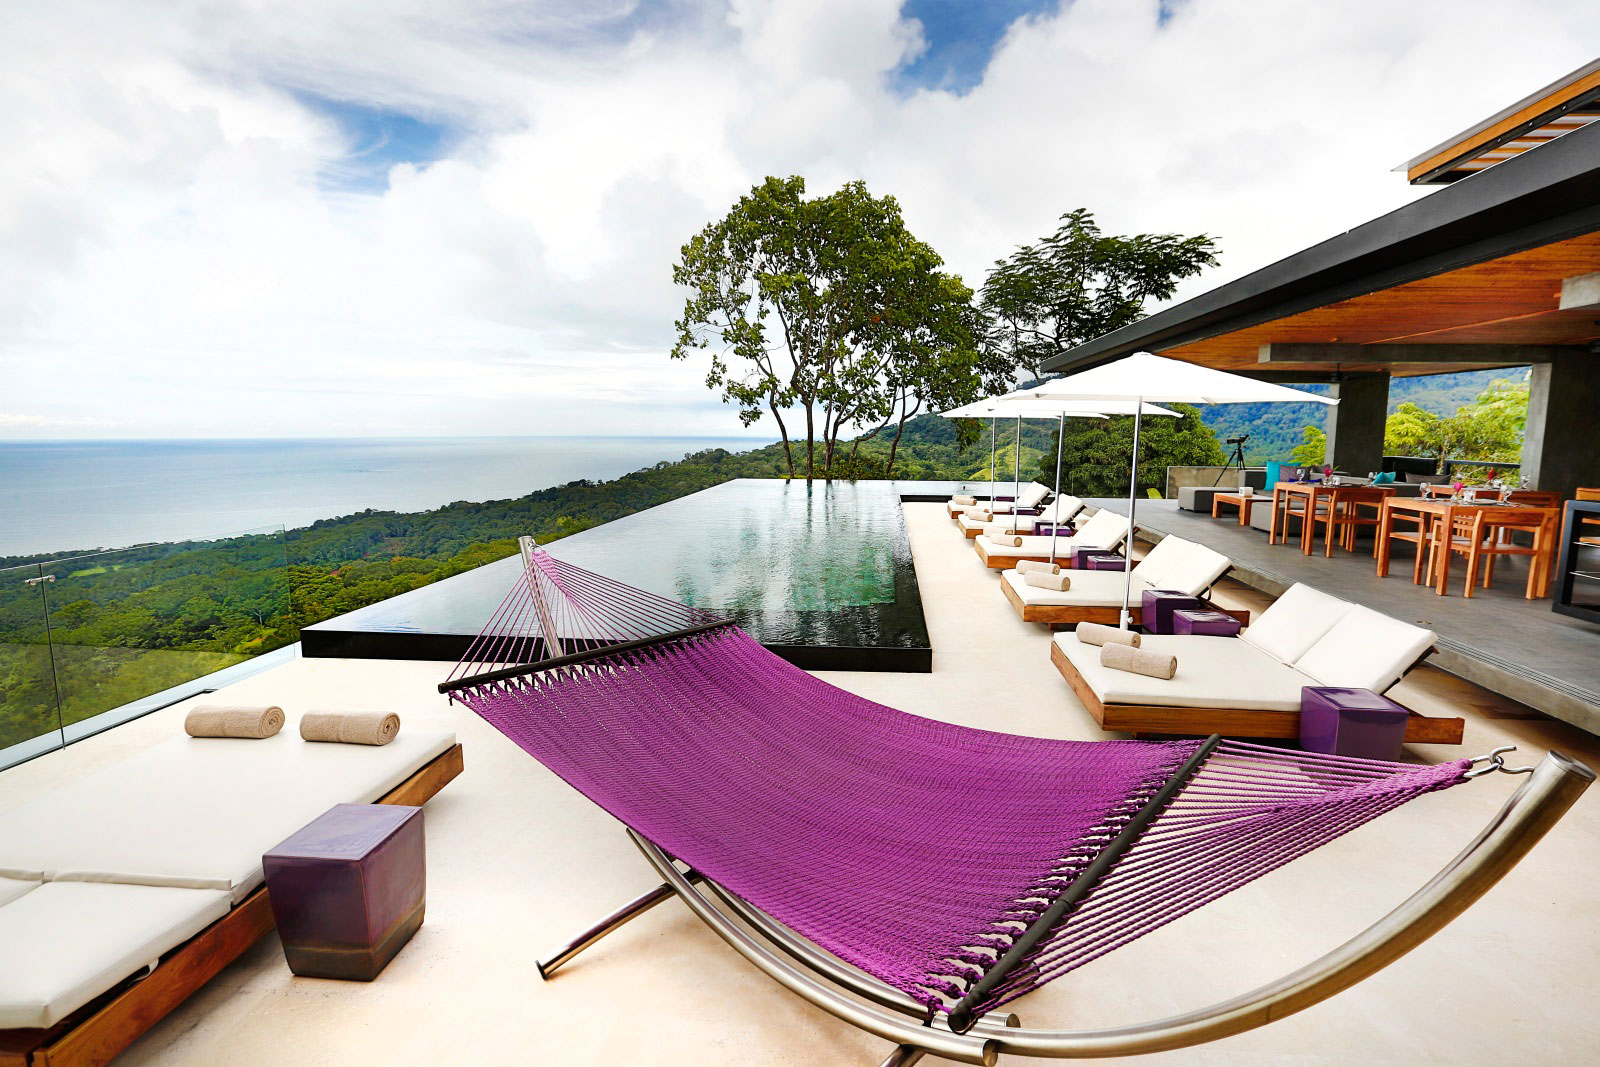 Hammock, Pool, Terrace, Sea Views, Holiday Villas in Costa Rica